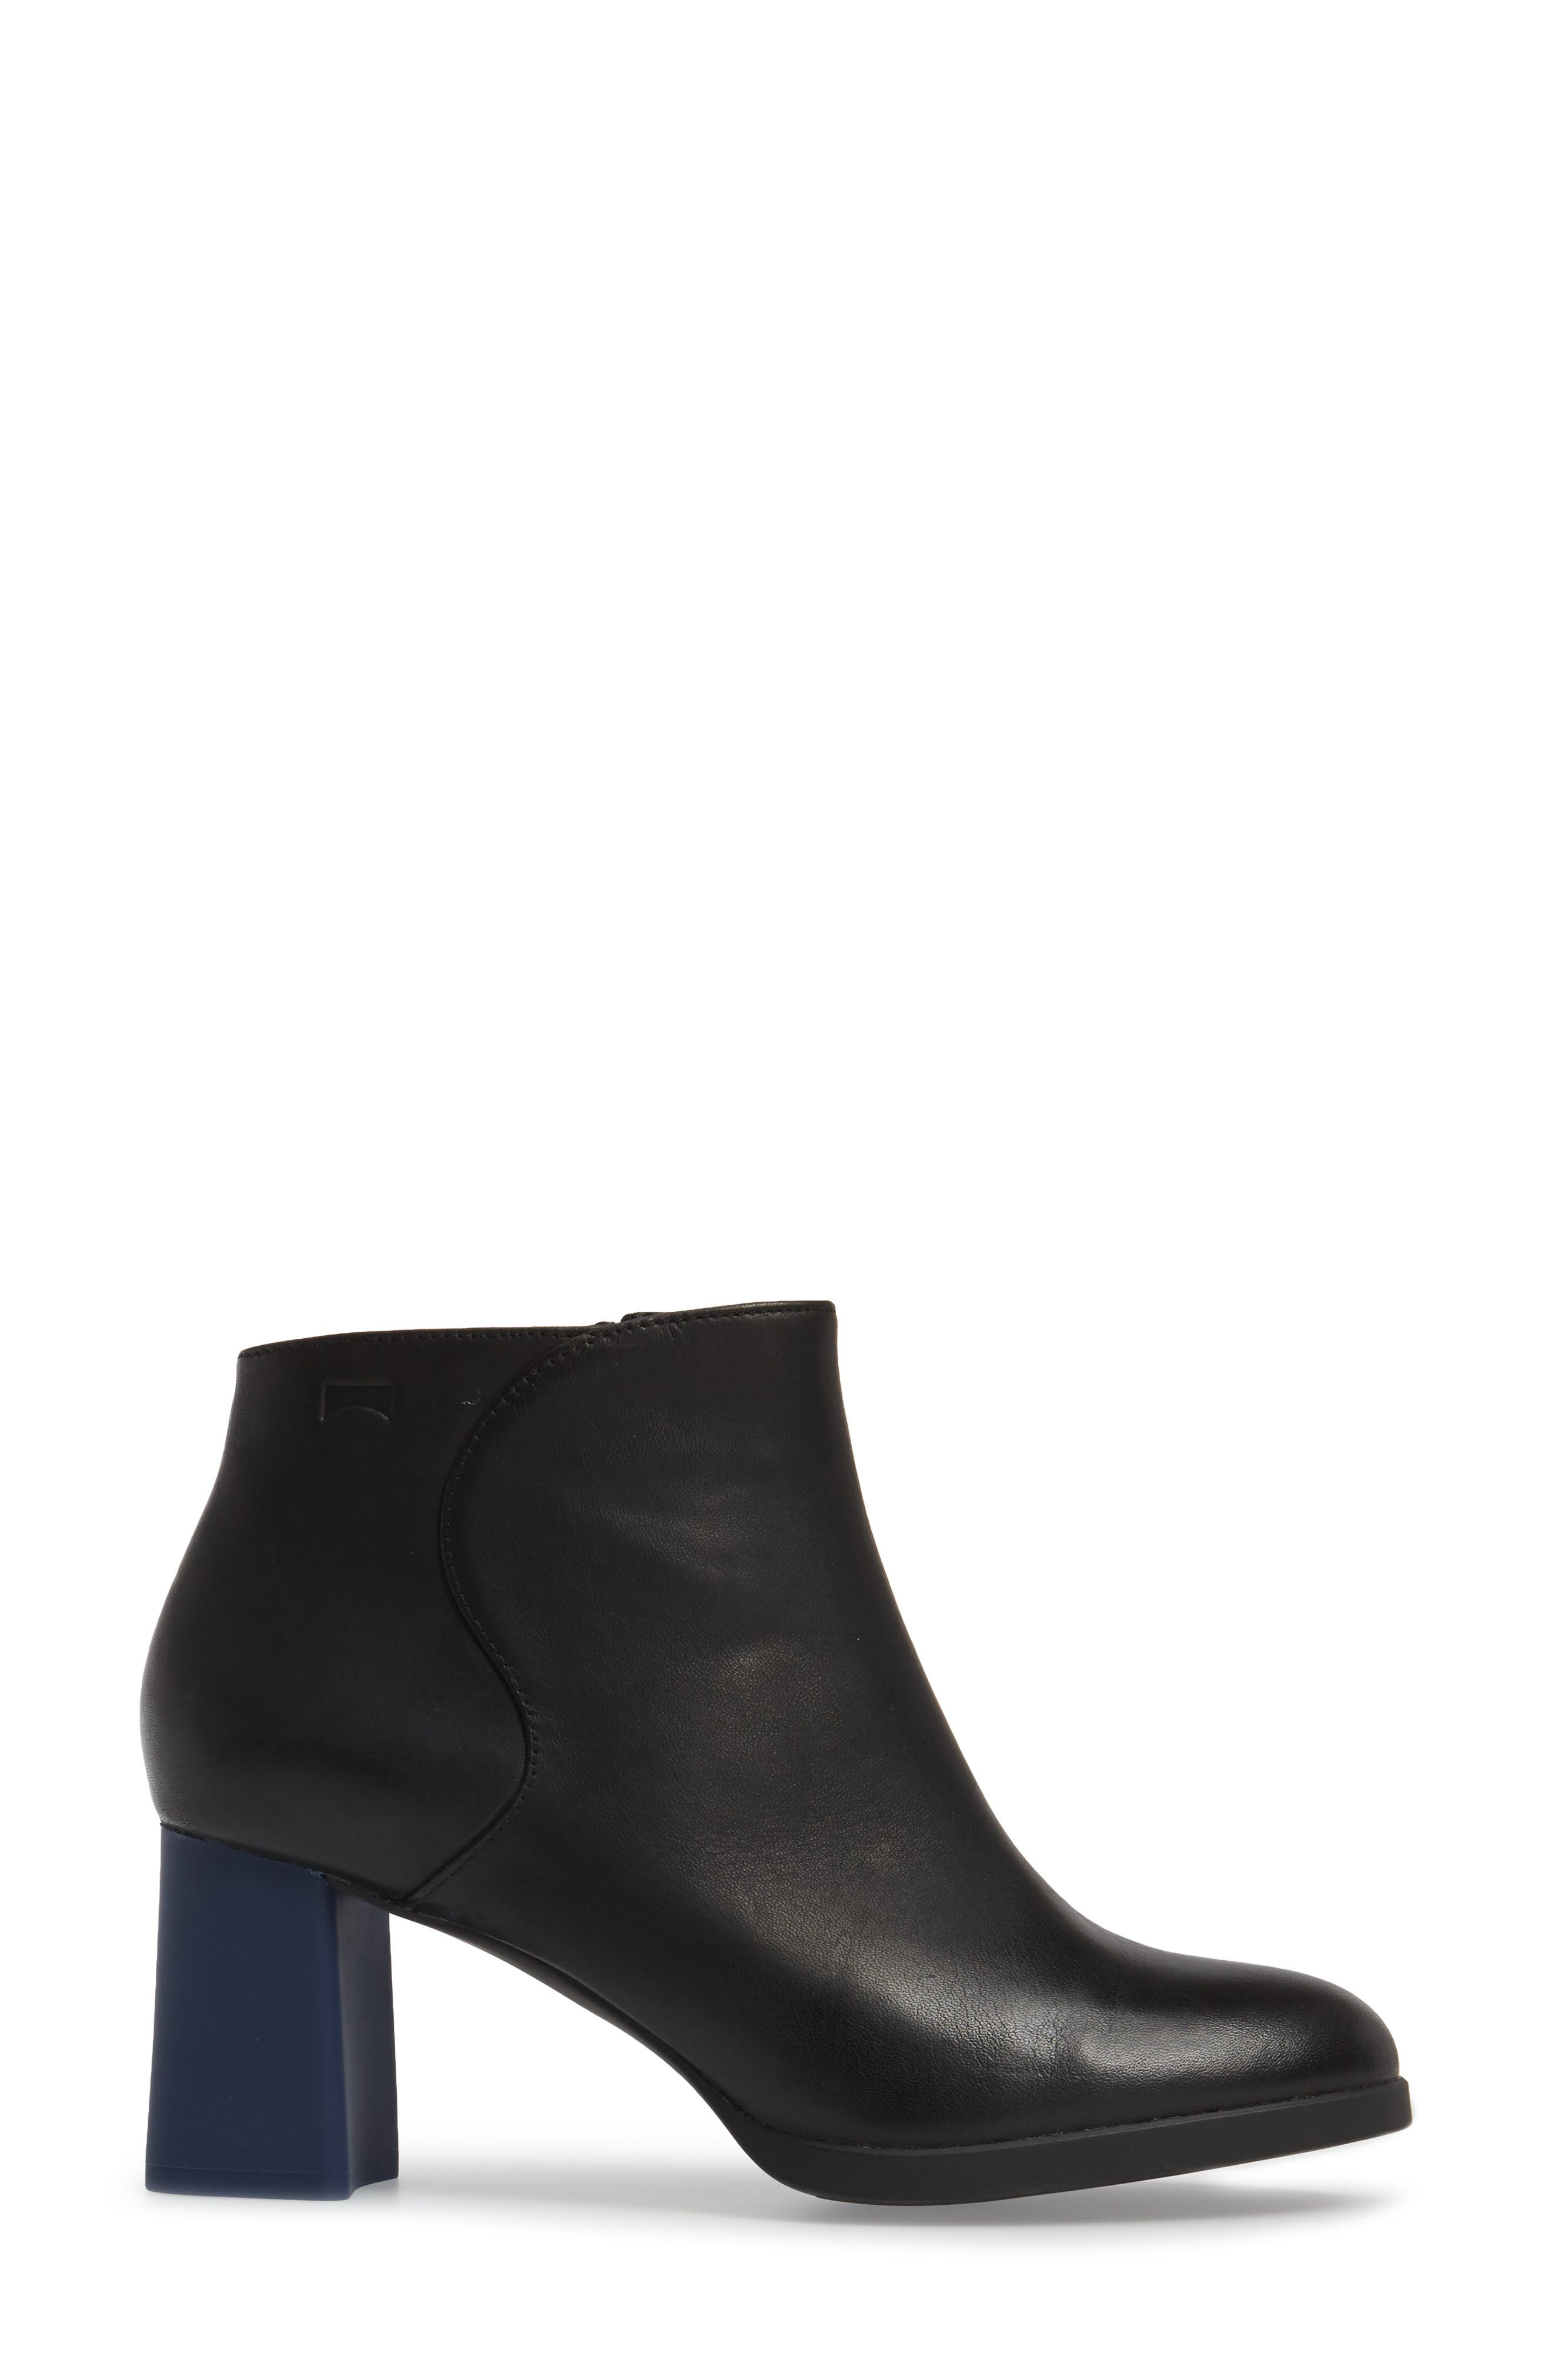 Kara Flared Heel Bootie,                             Alternate thumbnail 3, color,                             001